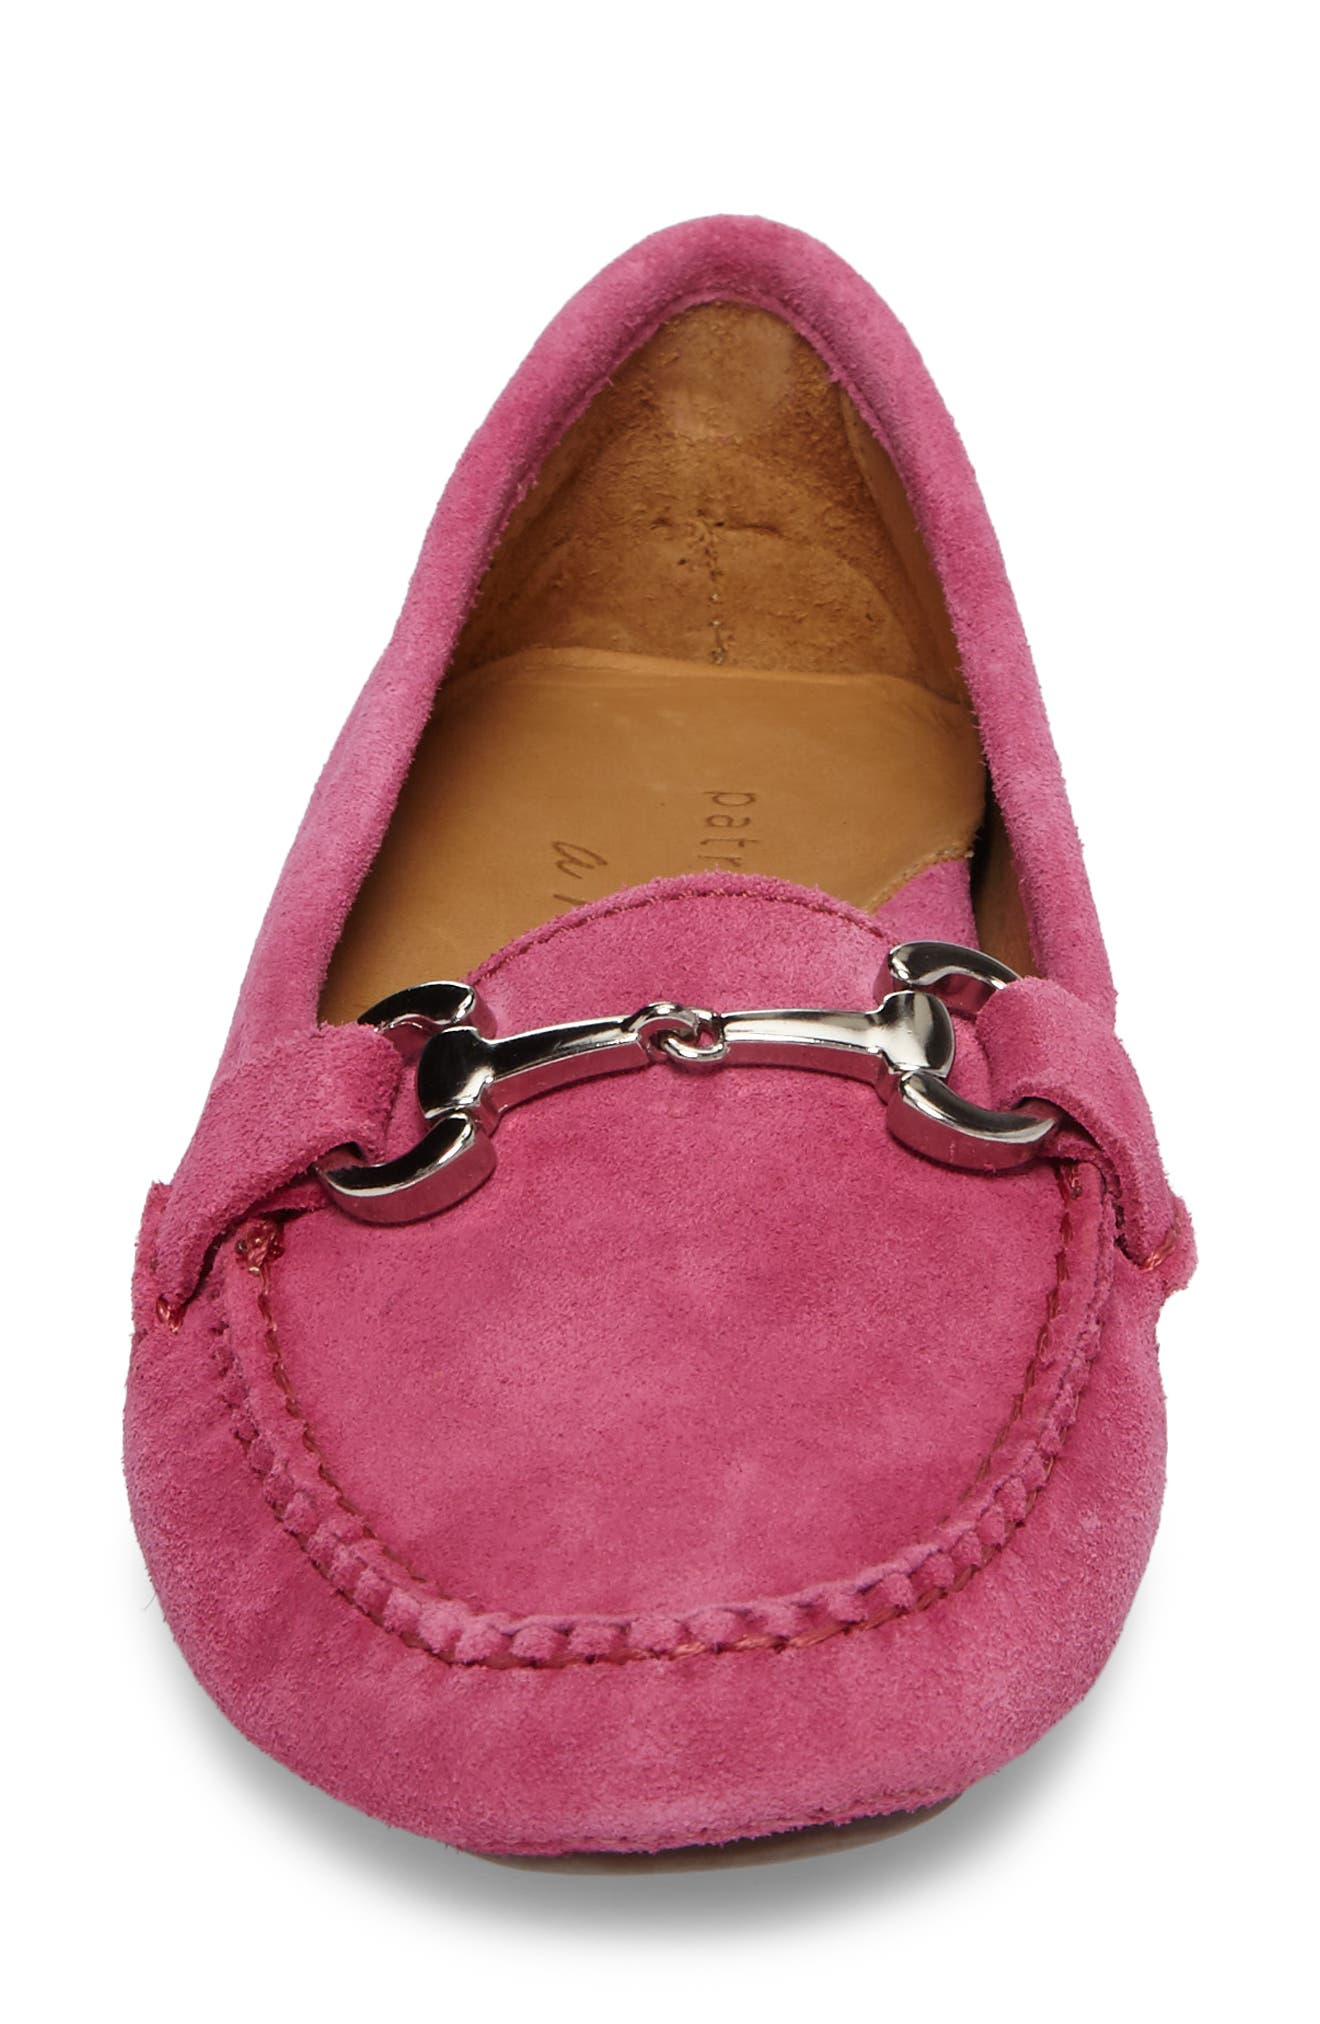 Alternate Image 3  - patricia green 'Carrie' Loafer (Women)